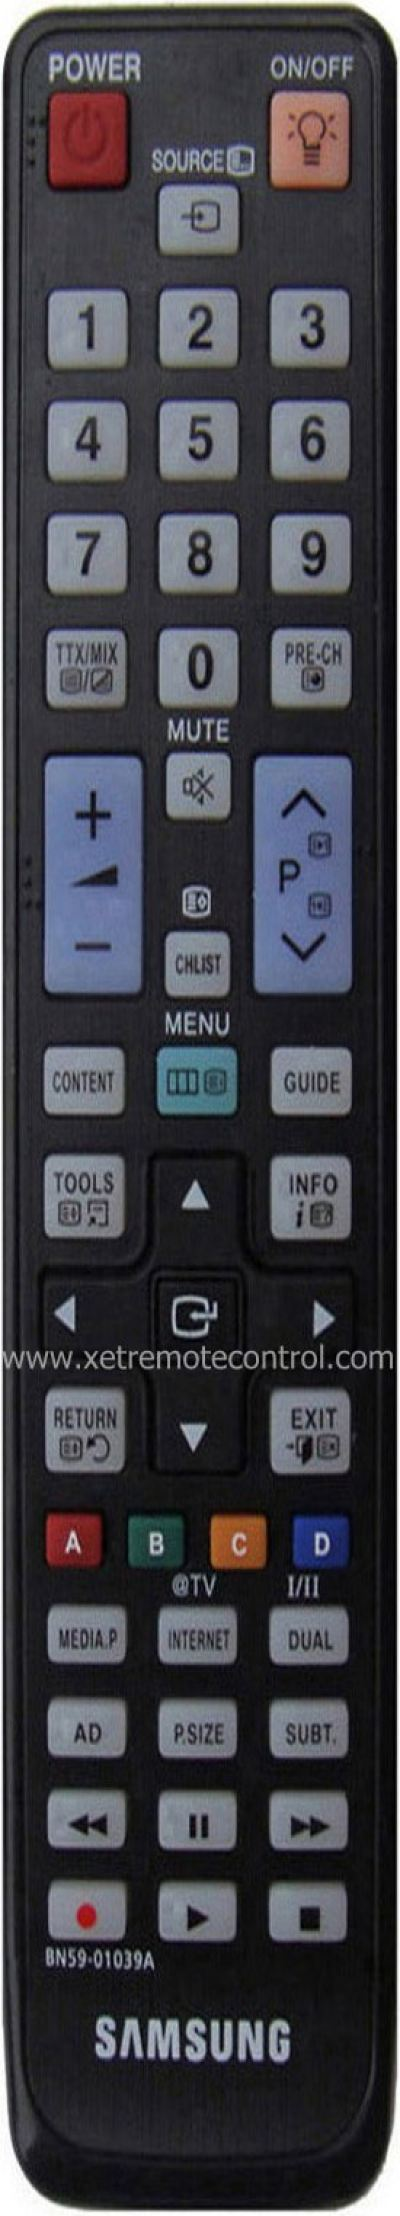 BN59-01039A SAMSUNG LCD/LED TV REMOTE CONTROL